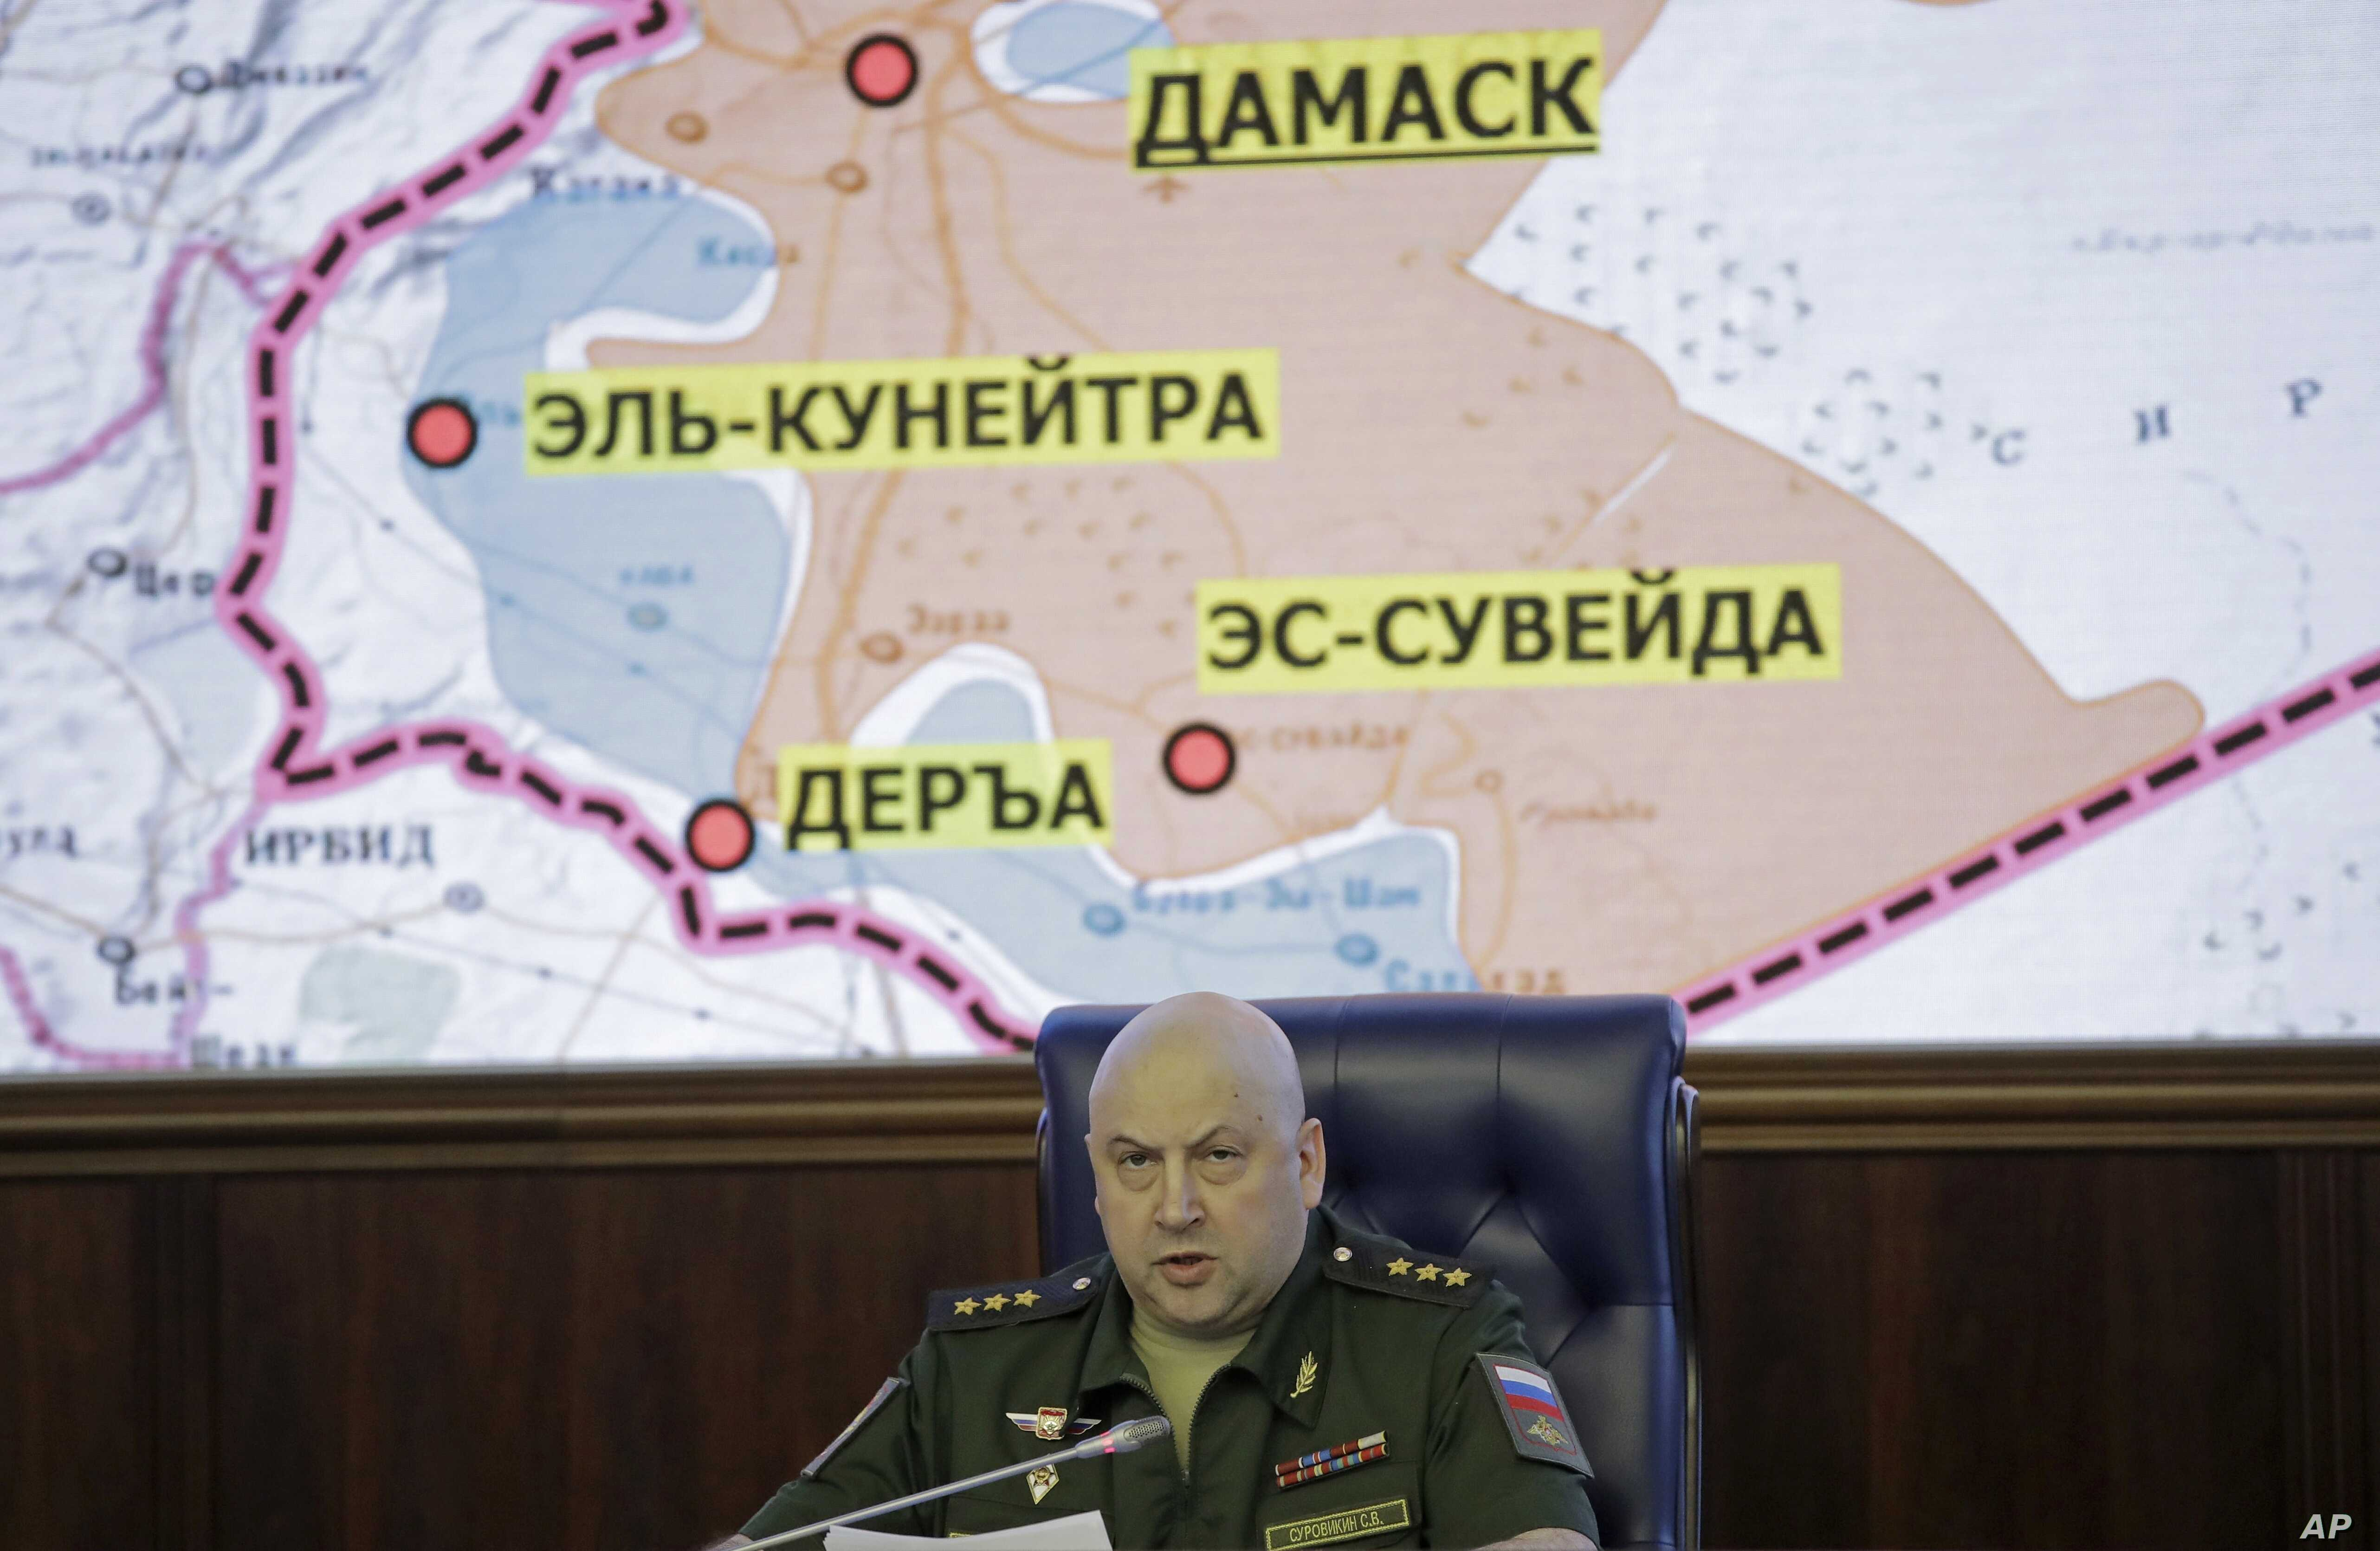 Colonel General Sergei Surovikin, commander of the Russian forces in Syria, speaks, with a map of Syria projected on the screen in the back, at a briefing in the Russian Defense Ministry in Moscow, June 9, 2017.